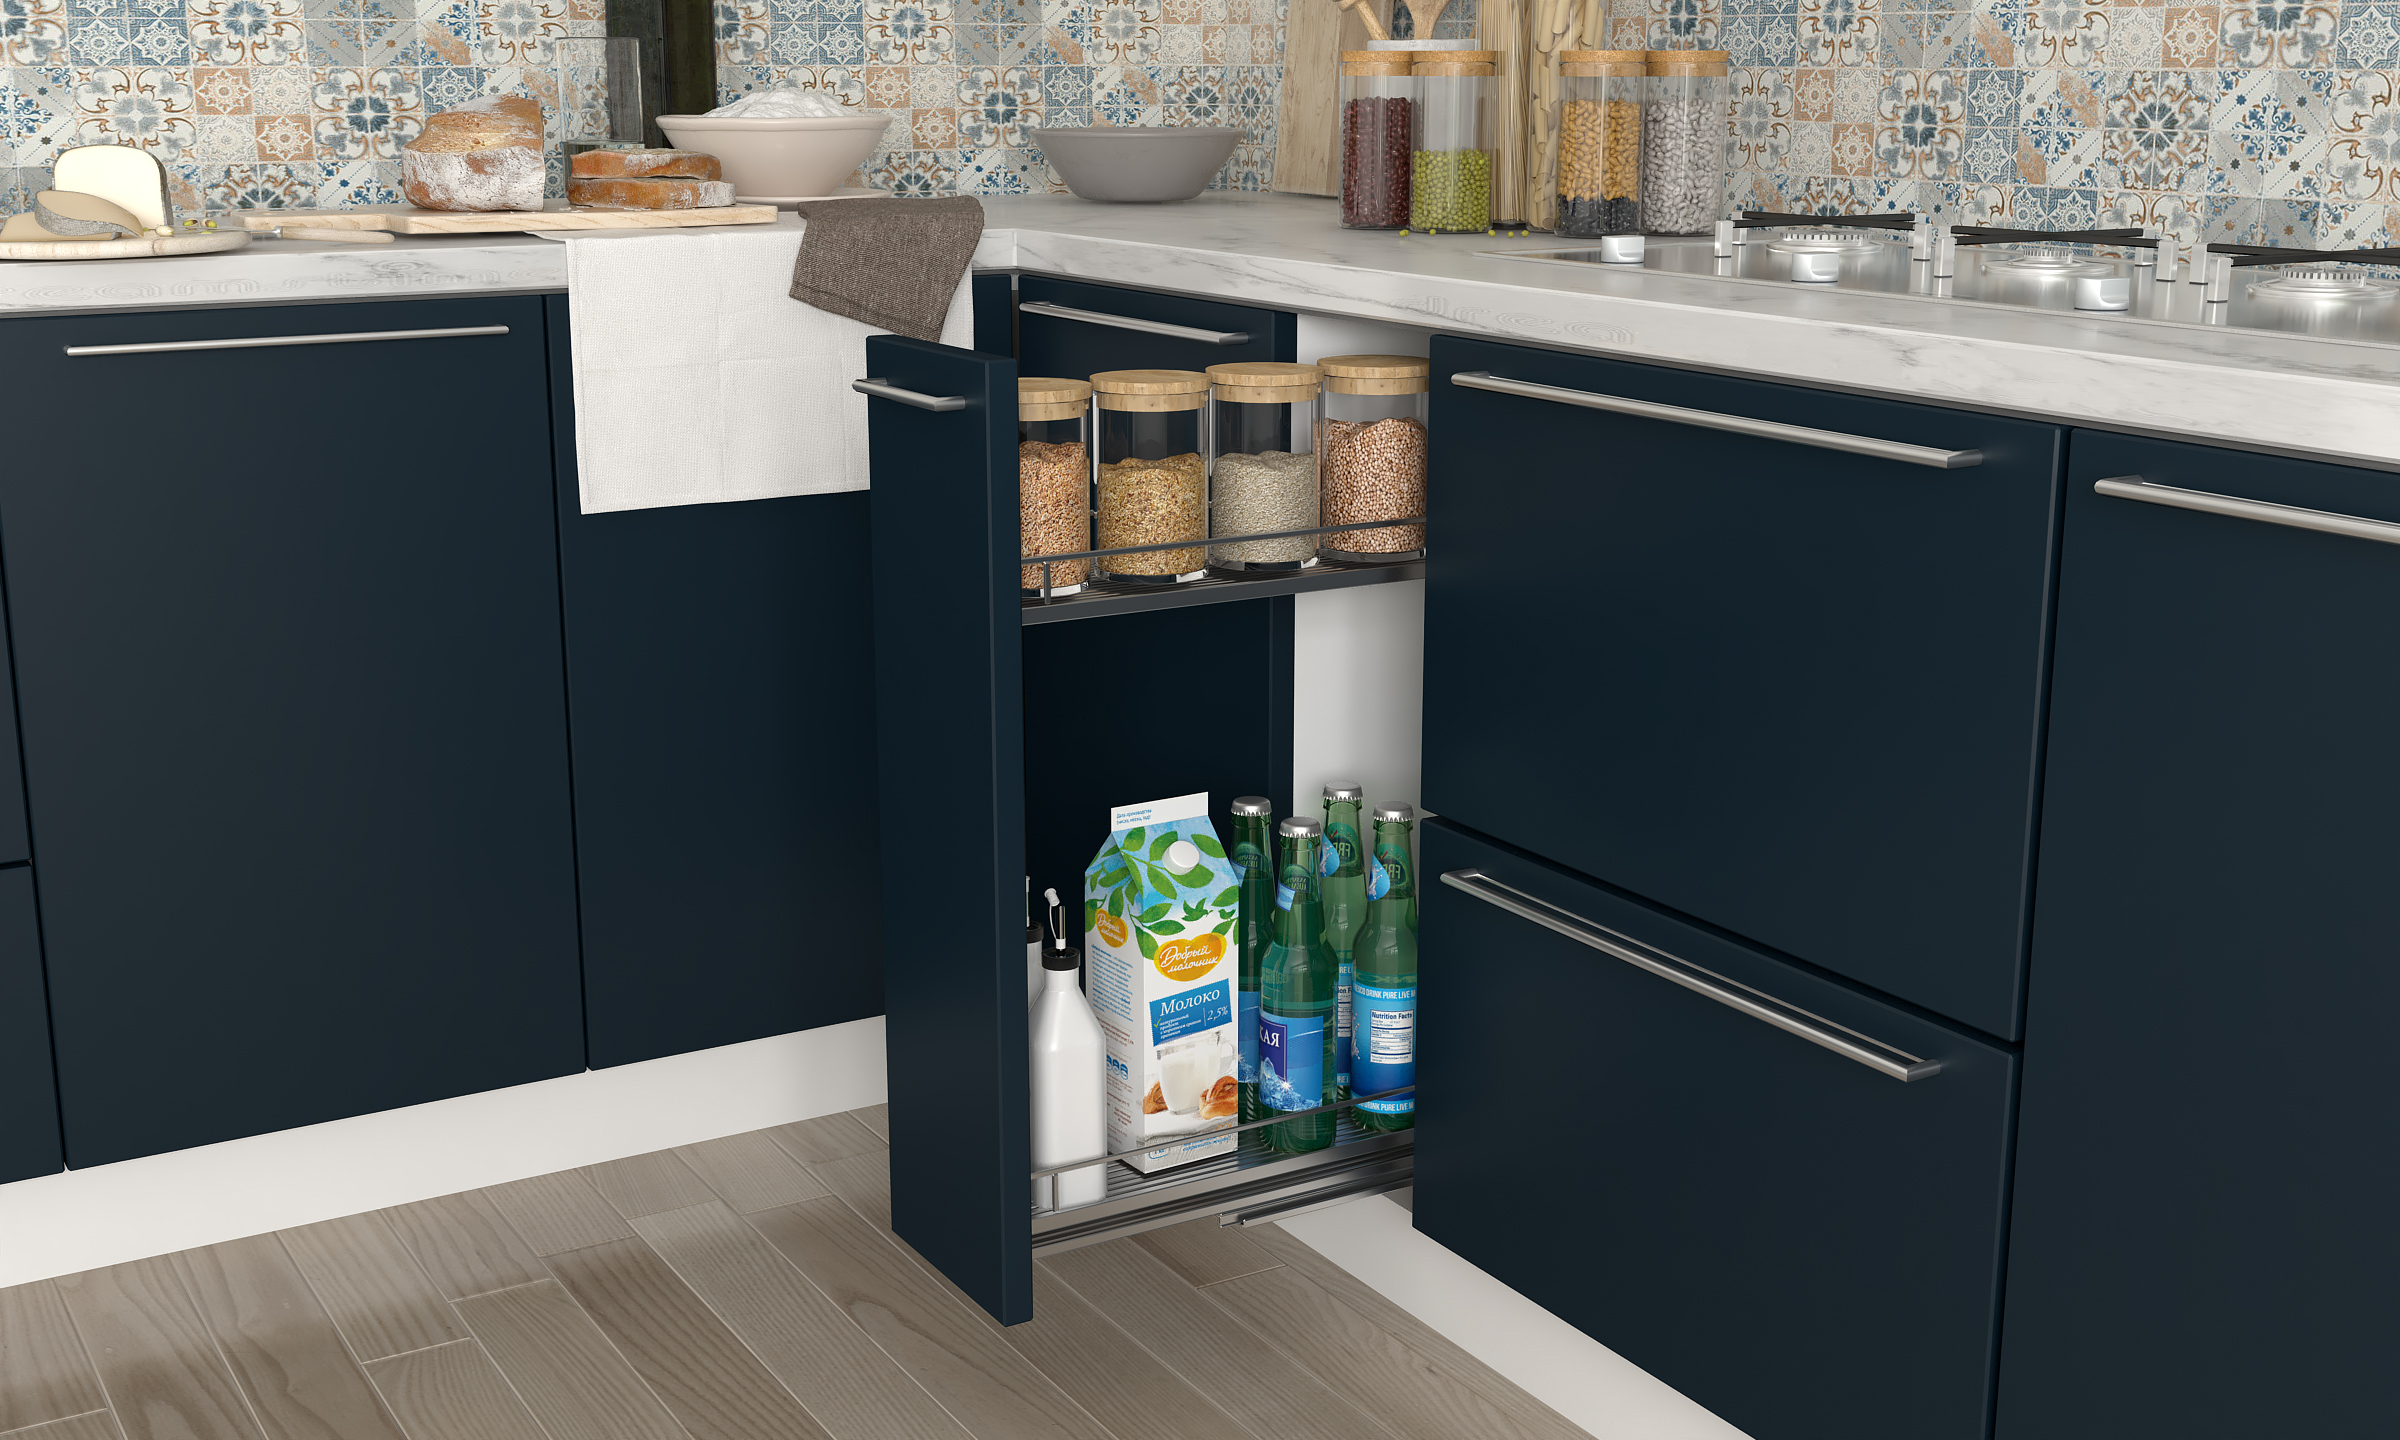 Maximize Storage Space in Your Modular Kitchen with Oil Pull Out